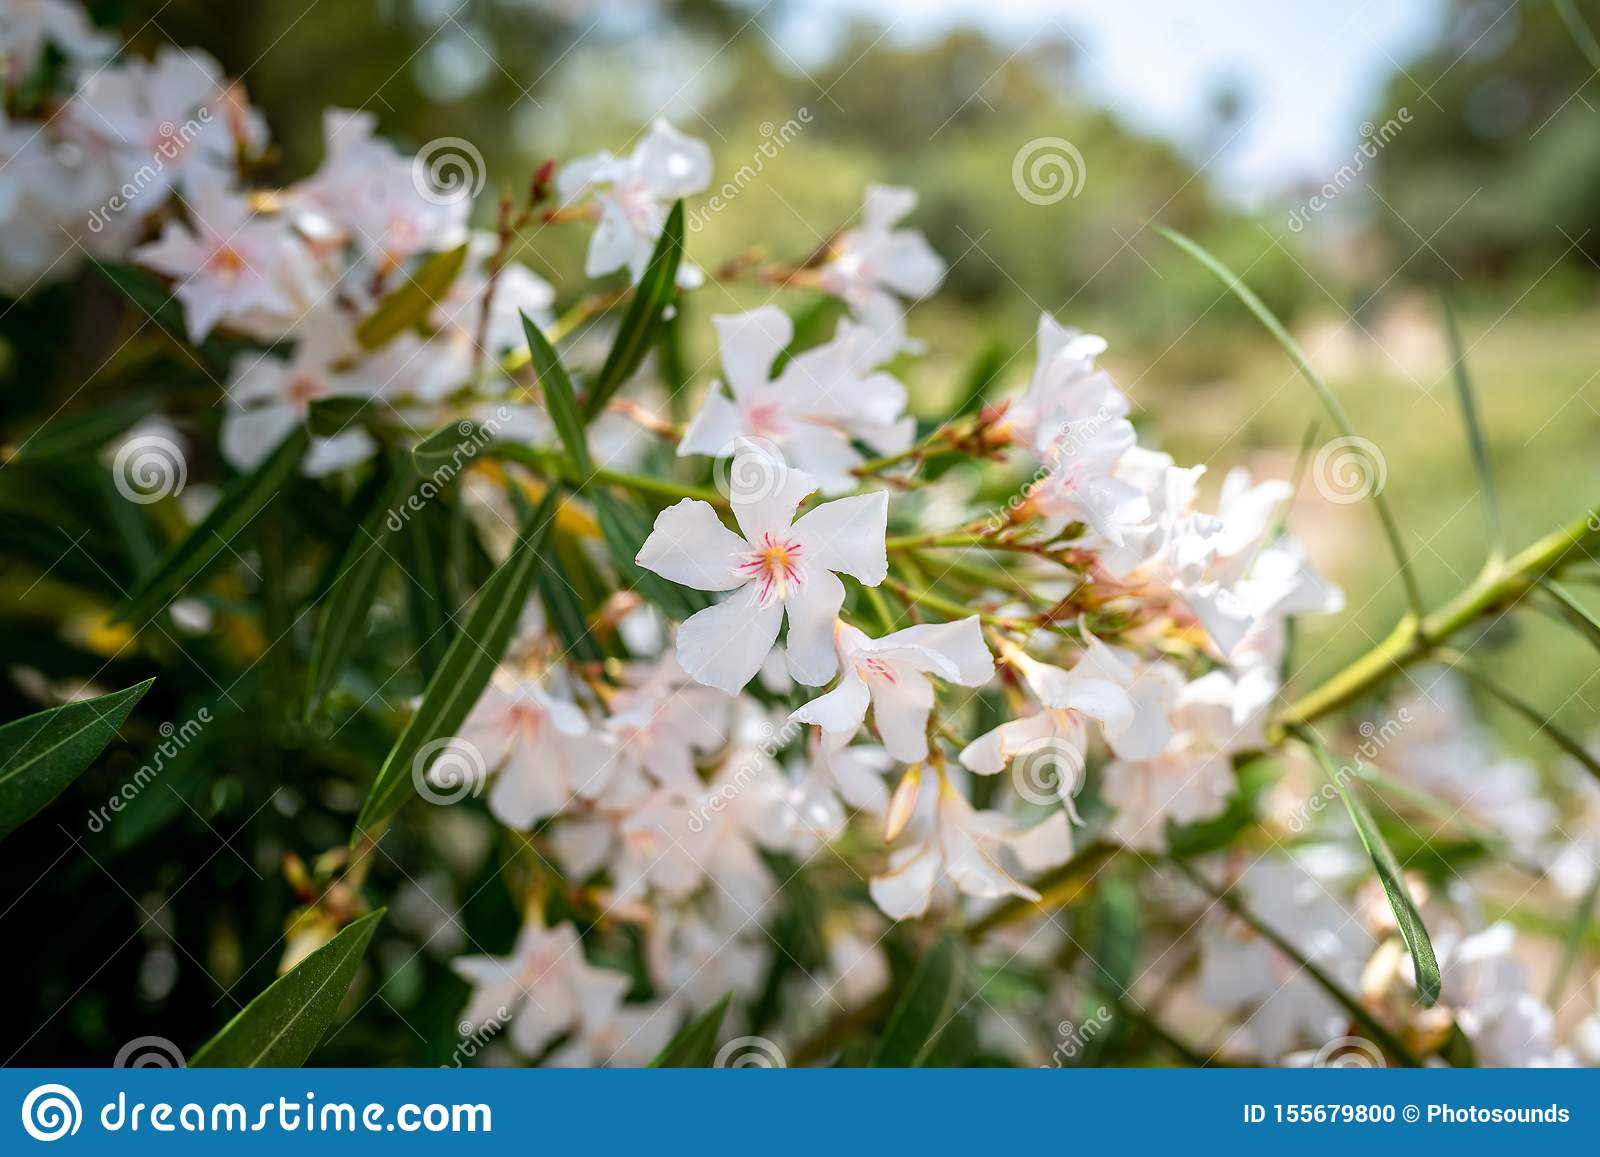 White Oleander Flowers Nerium Oleander. Colorful Bright Flower In Roman  Bath Garden In Carthage, Tunisia Stock Photo - Image of tunis, carthage:  155679800